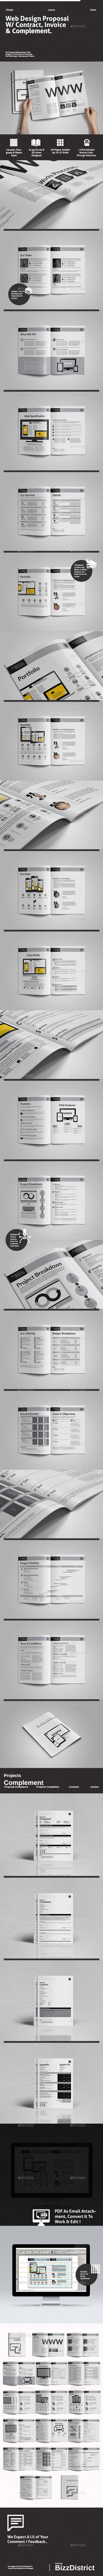 Web Design Proposal W/ Contract, Invoice Download: http://graphicriver.net/item/web-design-proposal-w-contract-invoice/10478943?ref=ksioks